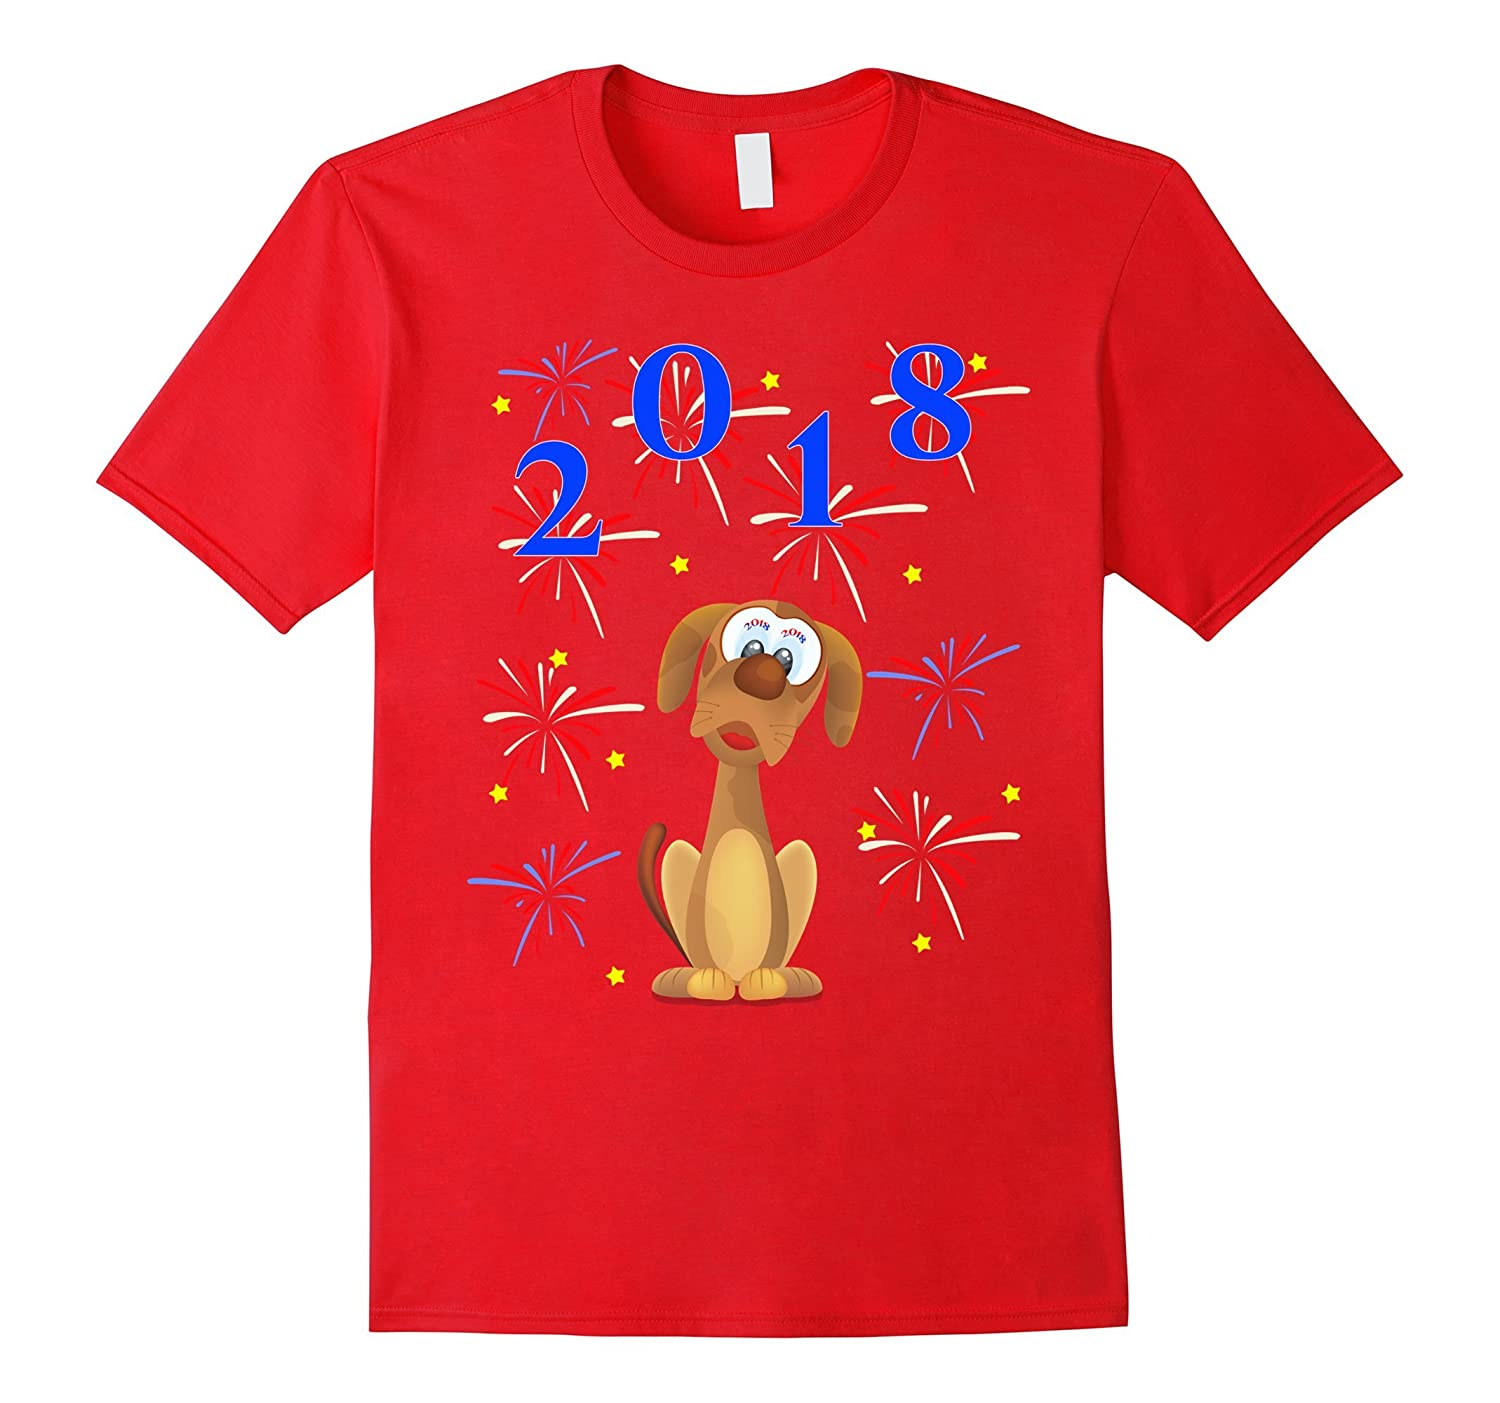 2018 HAPPY NEW YEAR T-SHIRT-Rose